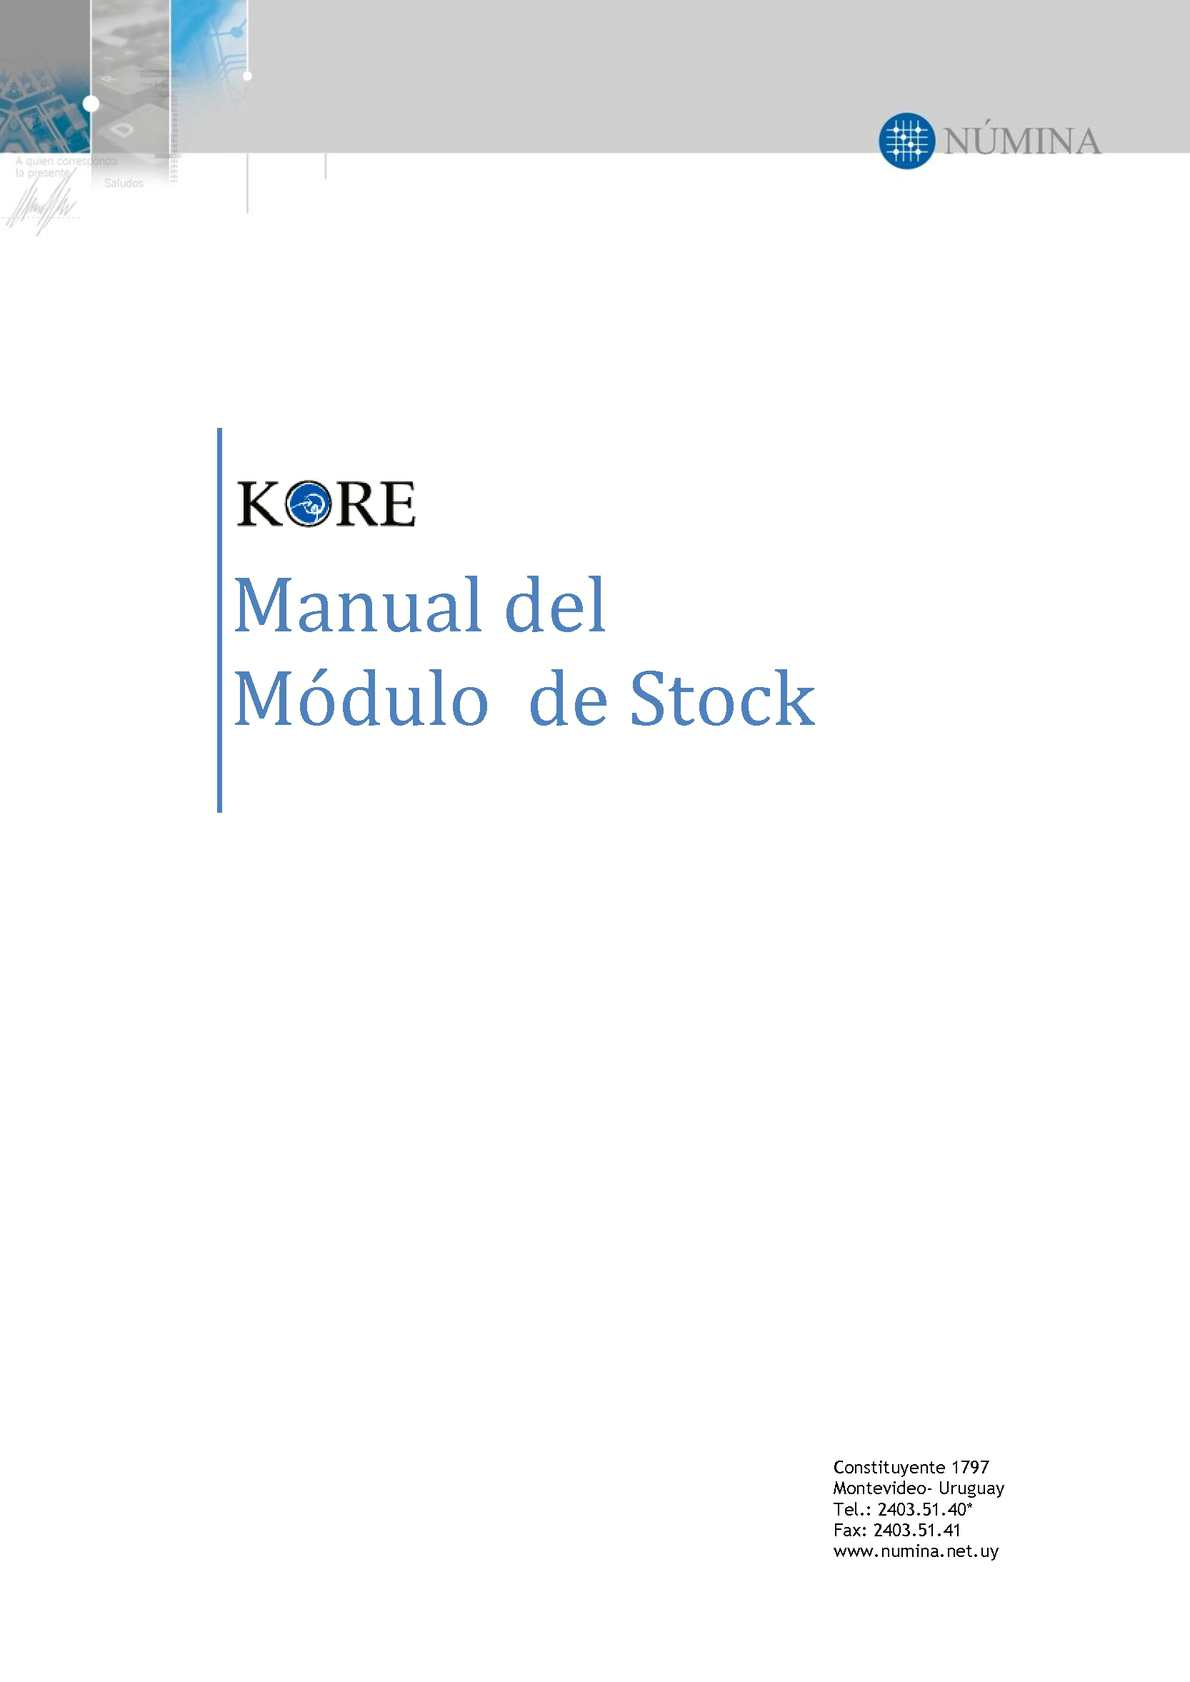 Manual de Kore, módulo de Stock